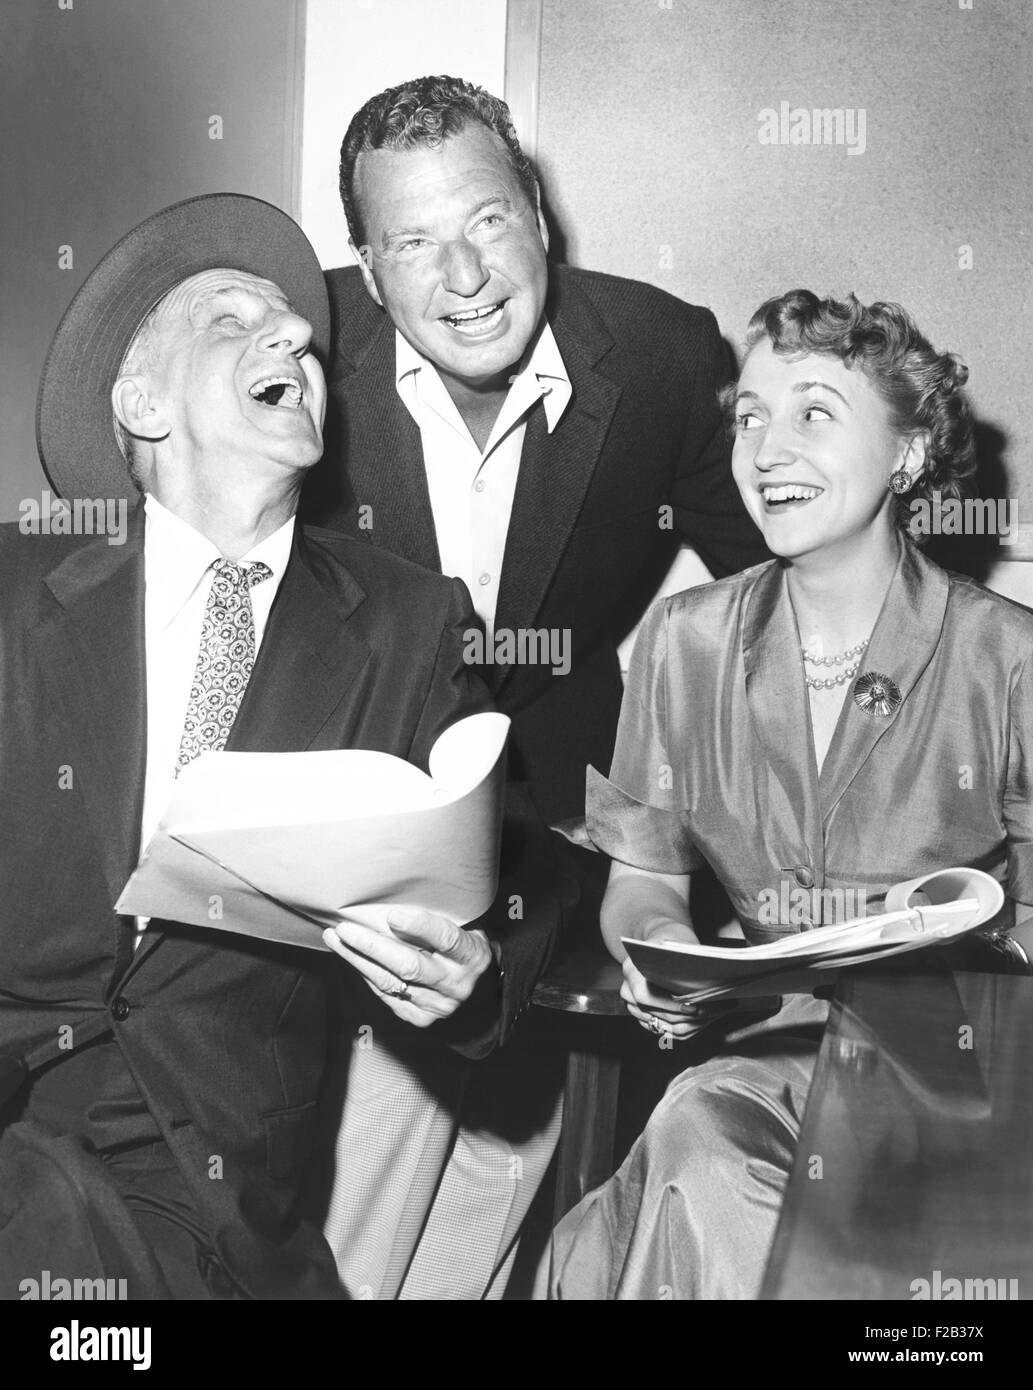 Jimmy Durante, Phil Harris, and Margaret Truman were featured on NBC-TV's 'All-Star Revue' Saturday, Sept. - Stock Image